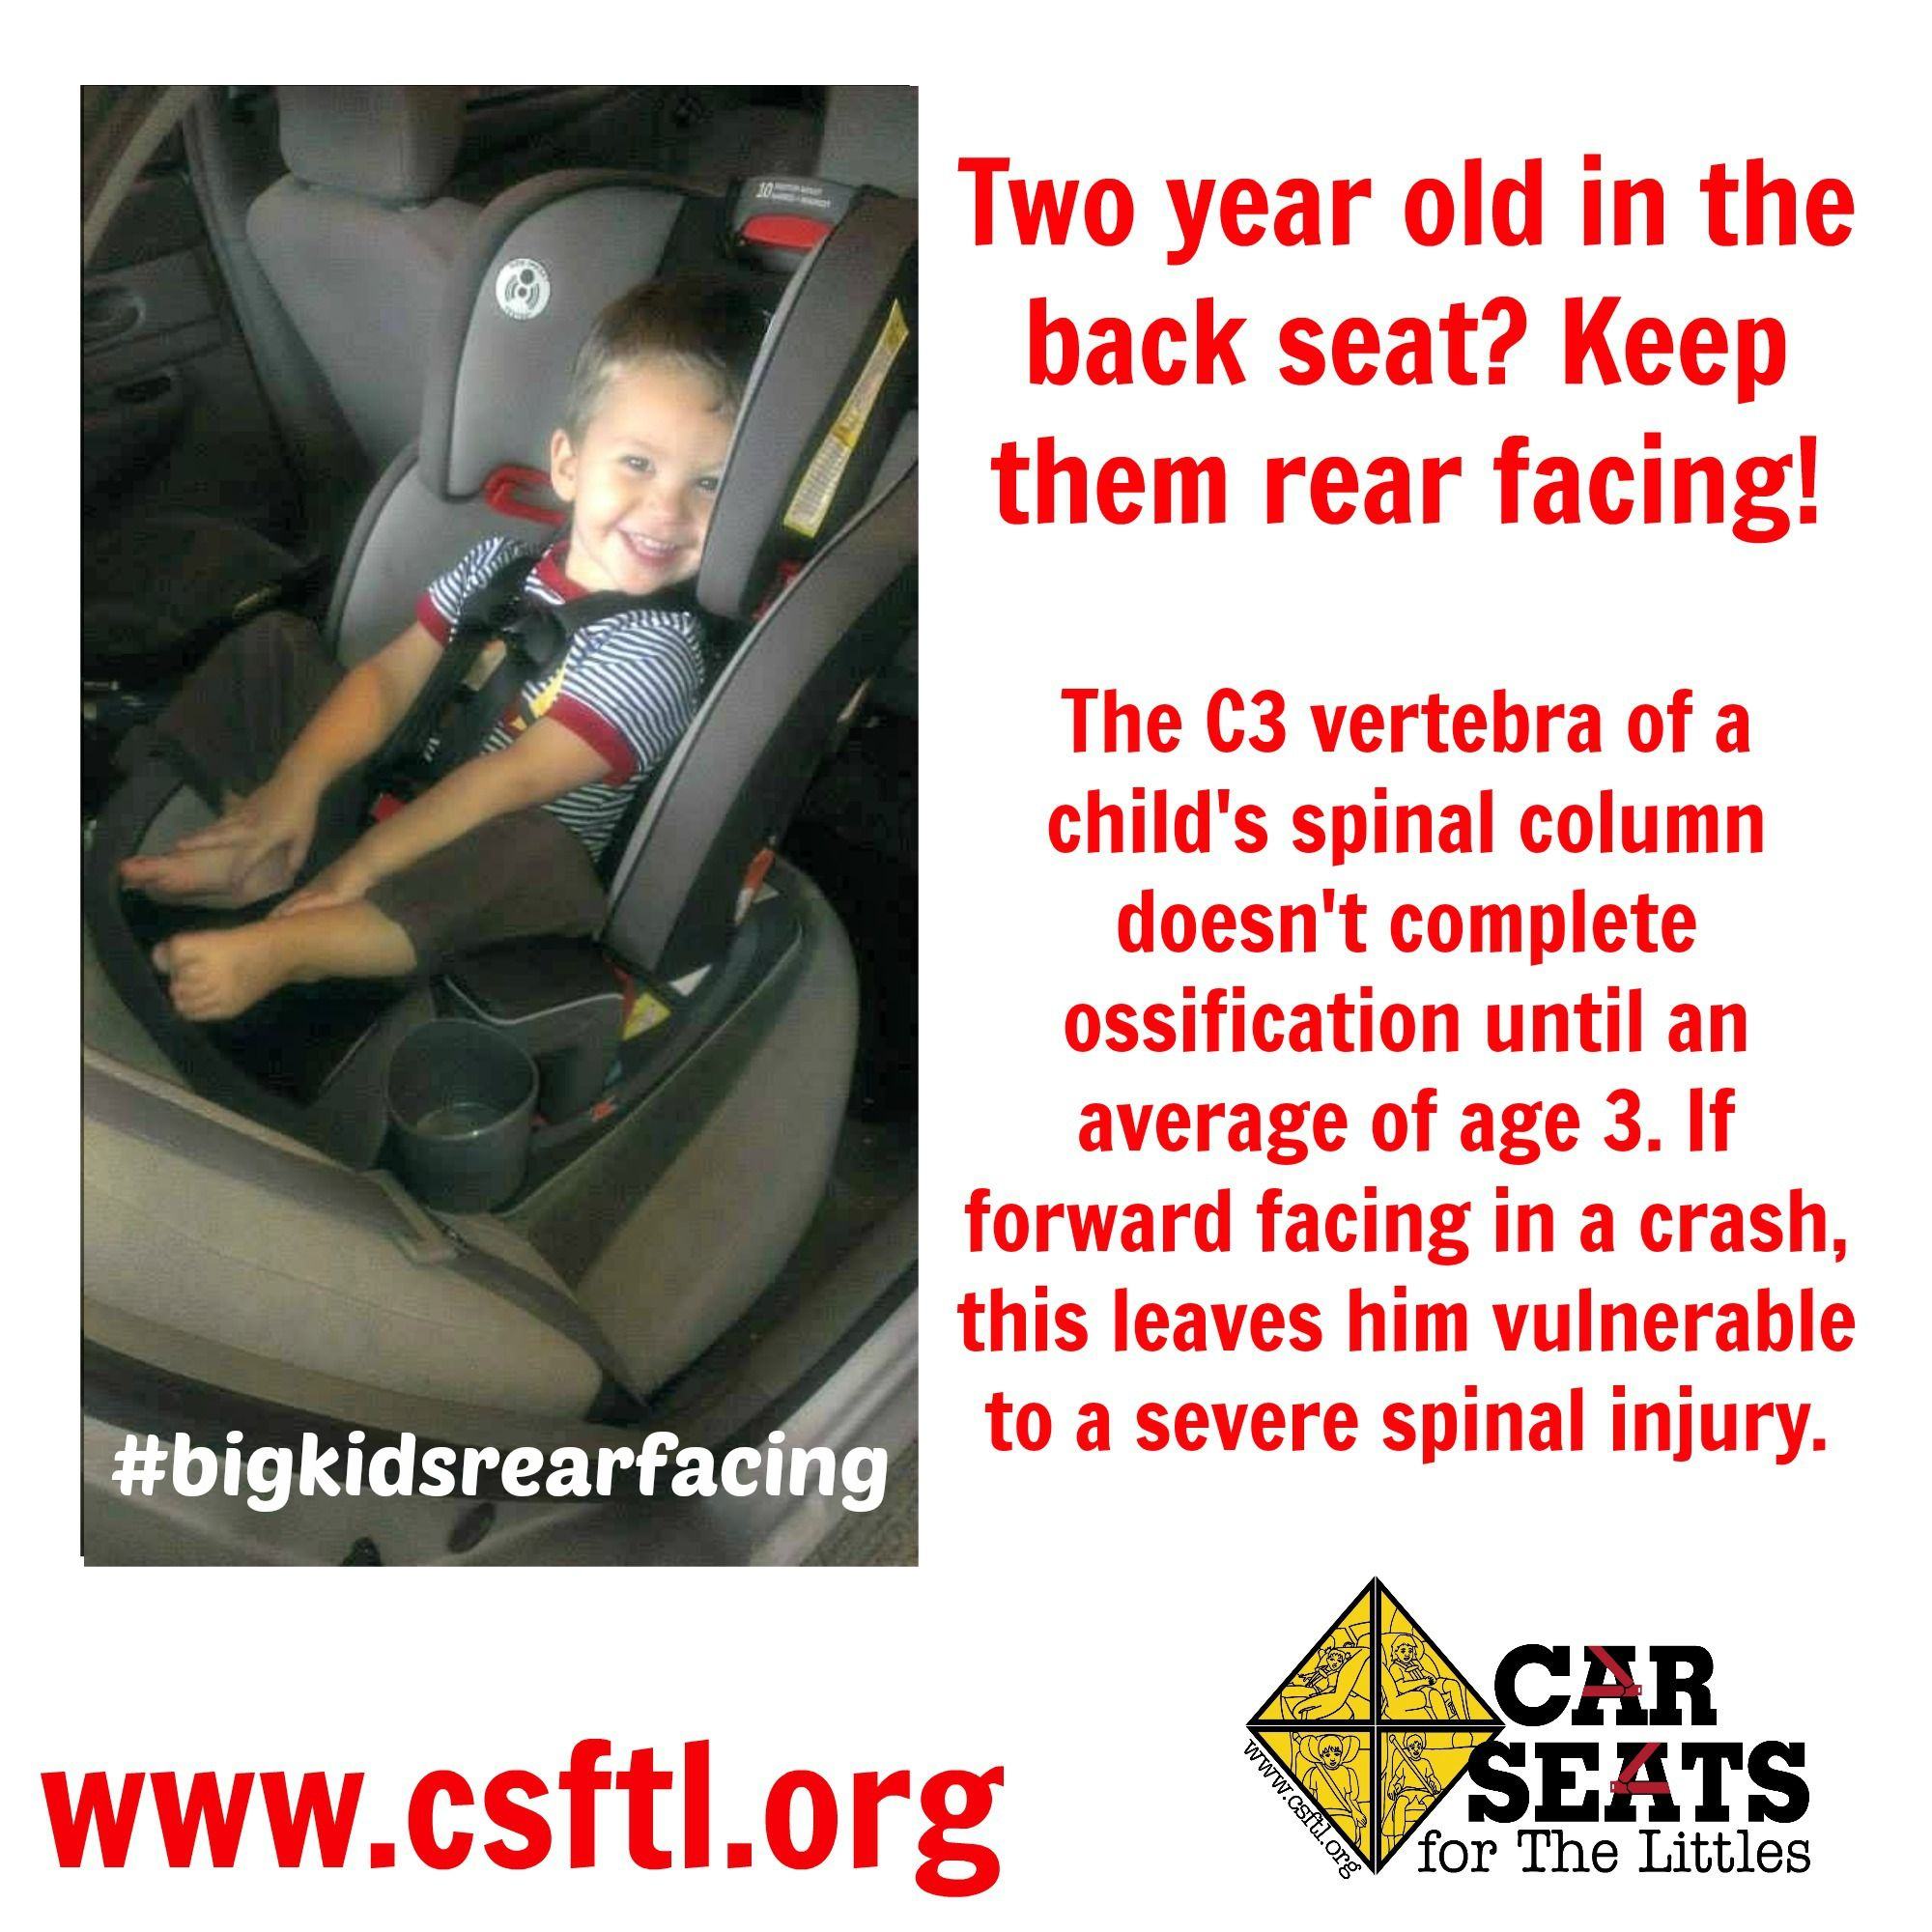 Rear Facing It S That Important Http Csftl Org Why Rear Facing The Science Junkies Guide Child Car Safety Car Seats Carseat Safety